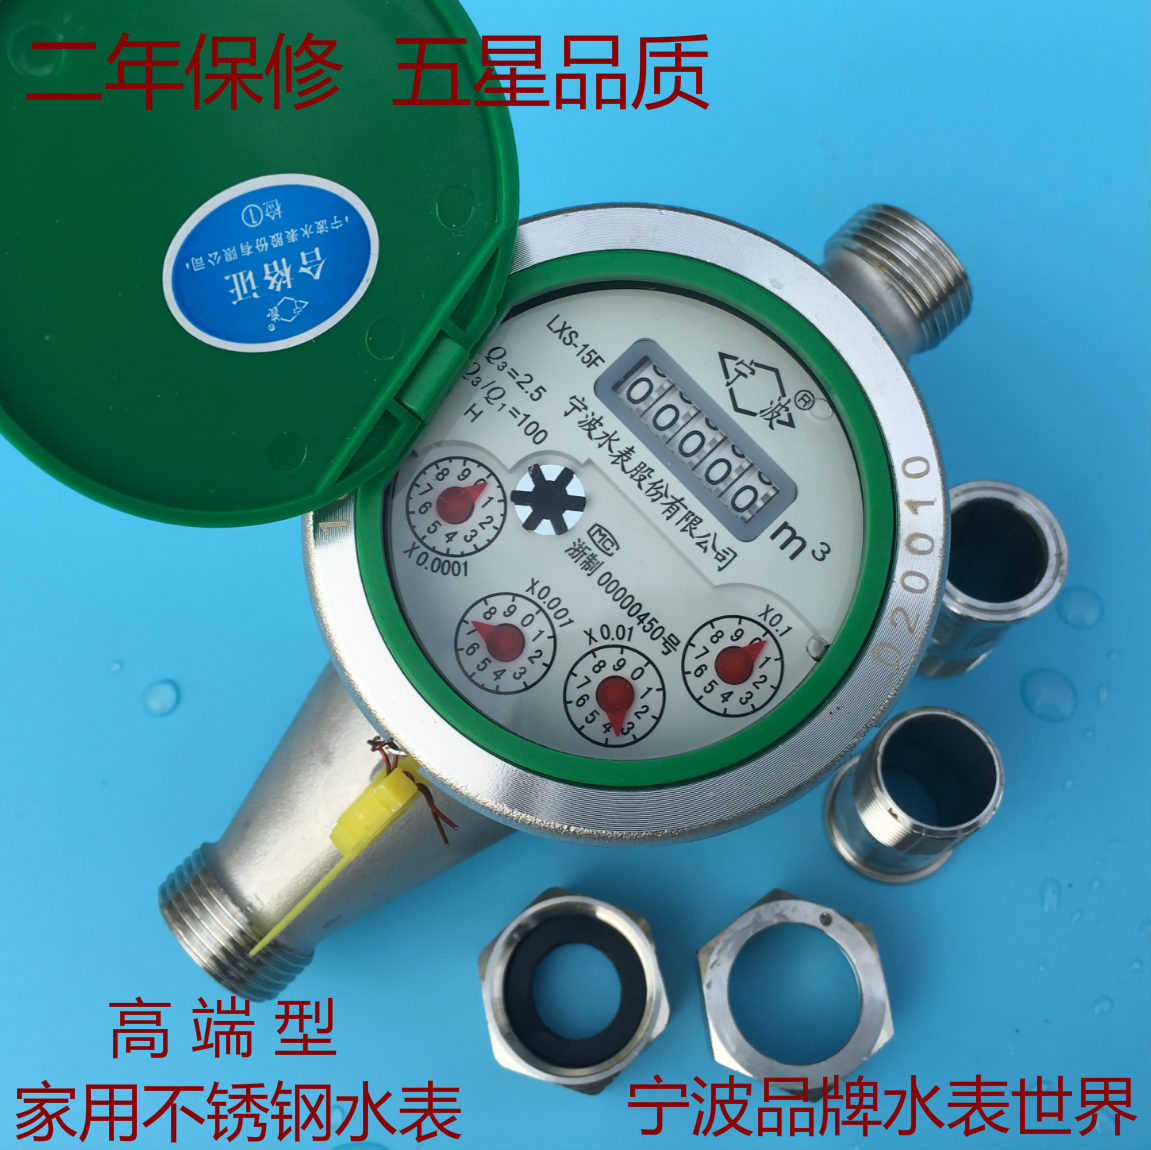 High-end 304 Food-grade Stainless Steel Water Meter with Copper Shell LXS-15~25FHigh-end 304 Food-grade Stainless Steel Water Meter with Copper Shell LXS-15~25F